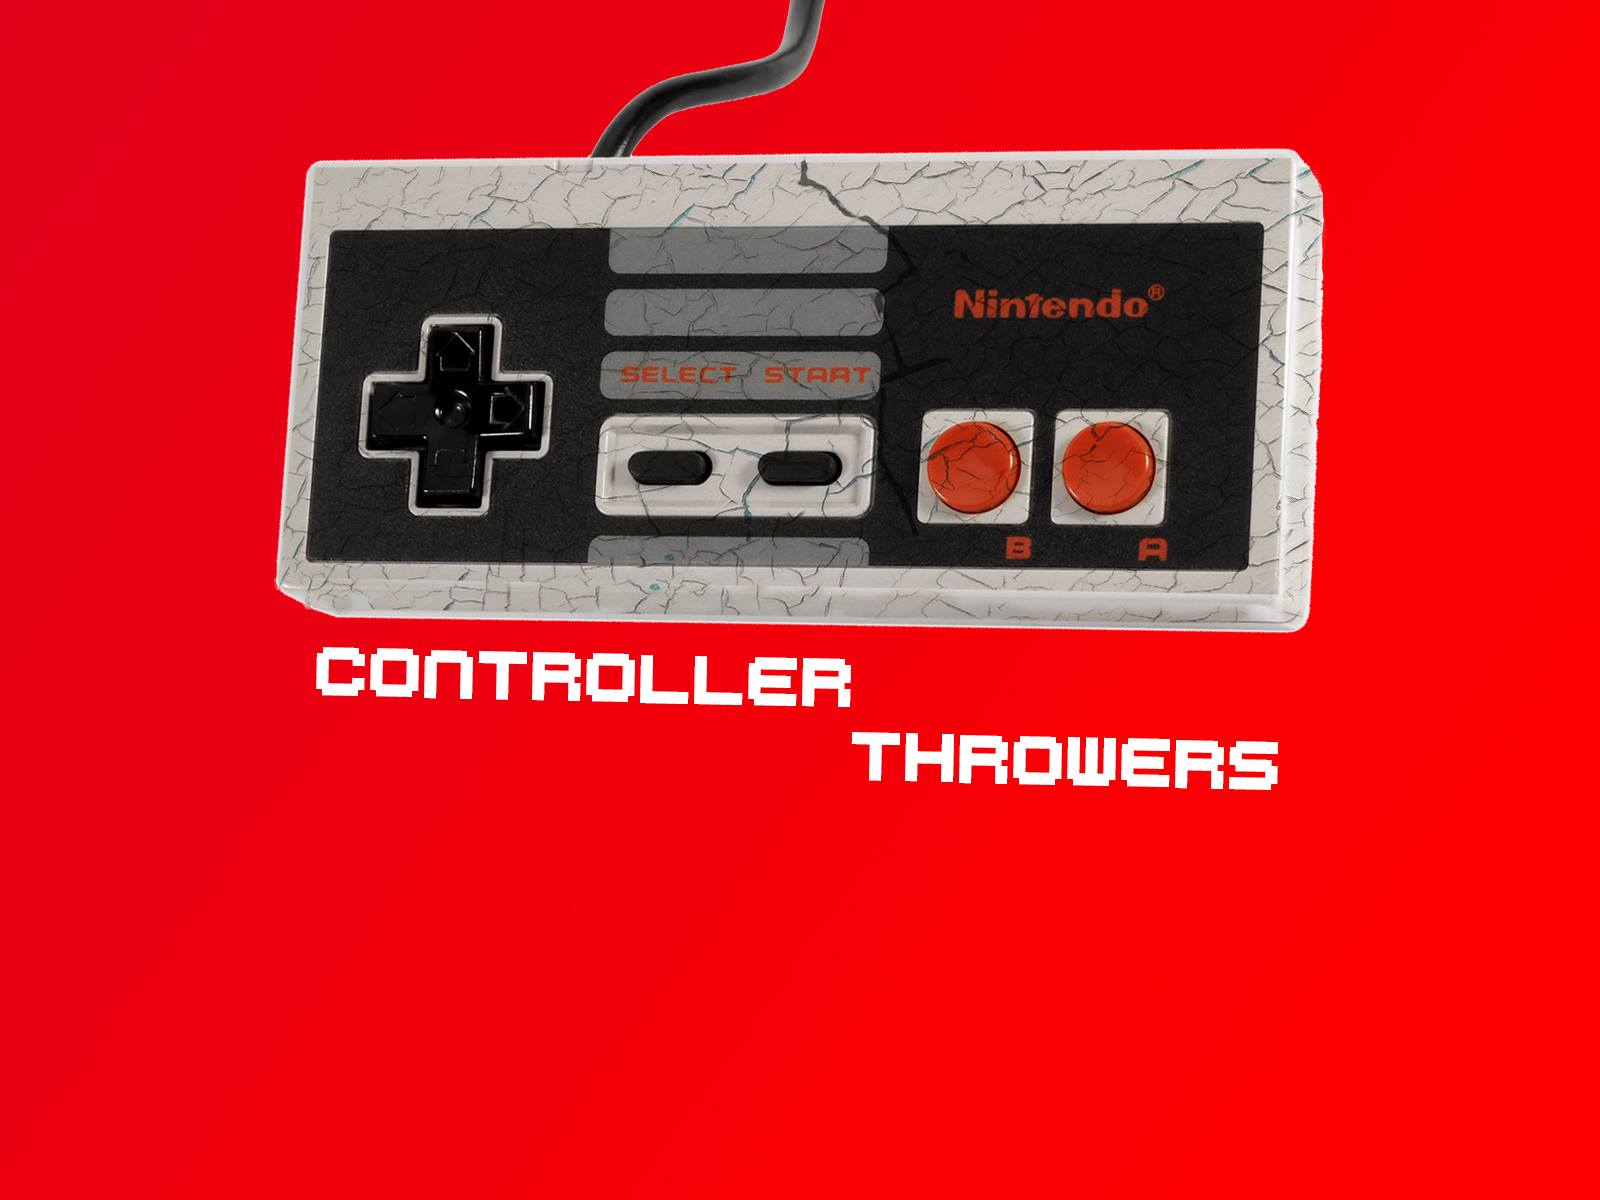 ControllerThrowers